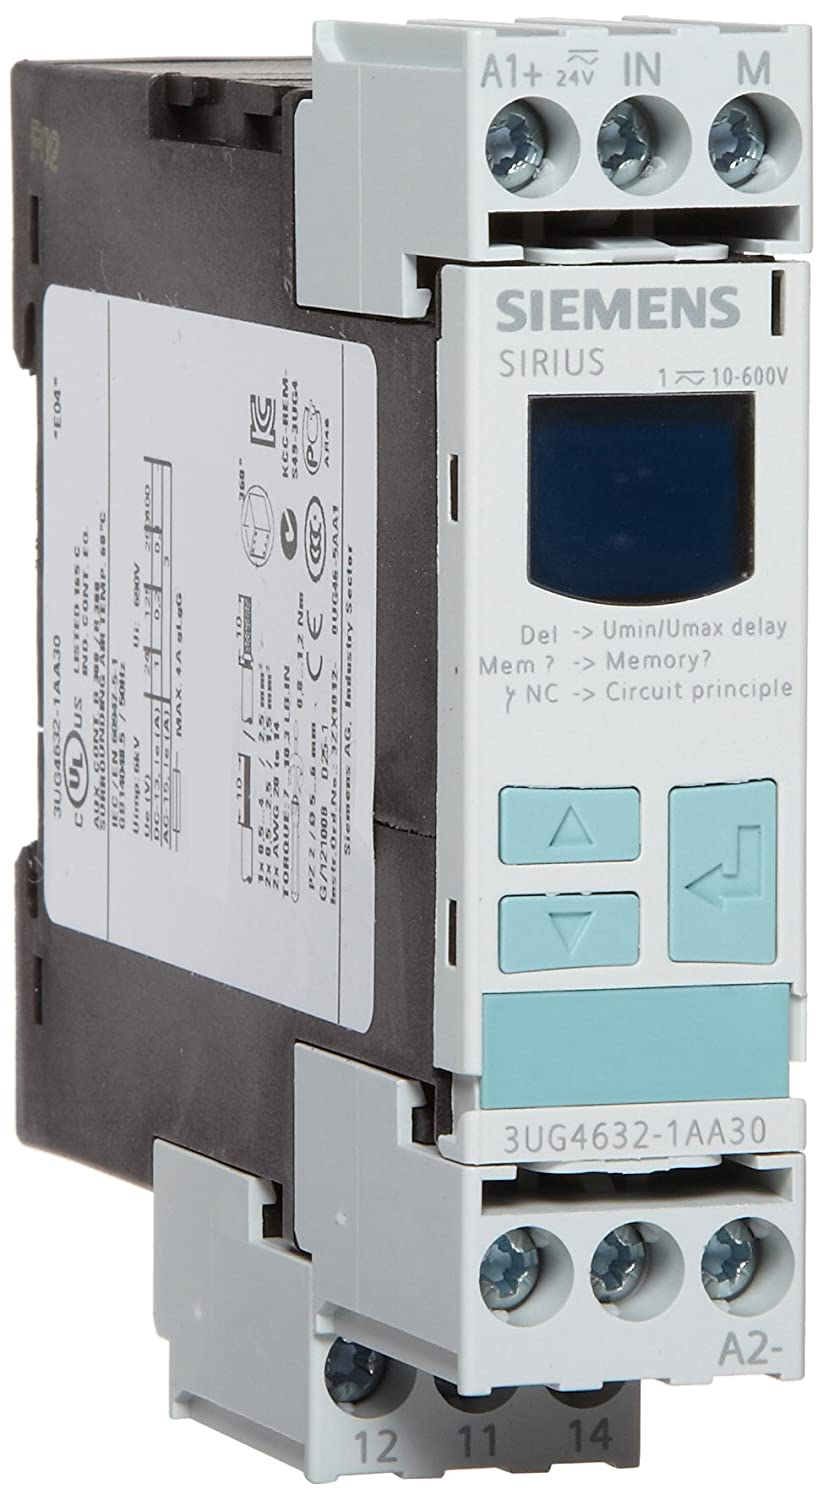 1 CO Contacts 10-600VAC//DC Measuring Range Single Phase Voltage Monitoring 0-20s Delay Time 24-240VAC//DC Auxiliary Voltage 0.1-300V Hysteresis Monitoring Relay Screw Terminal